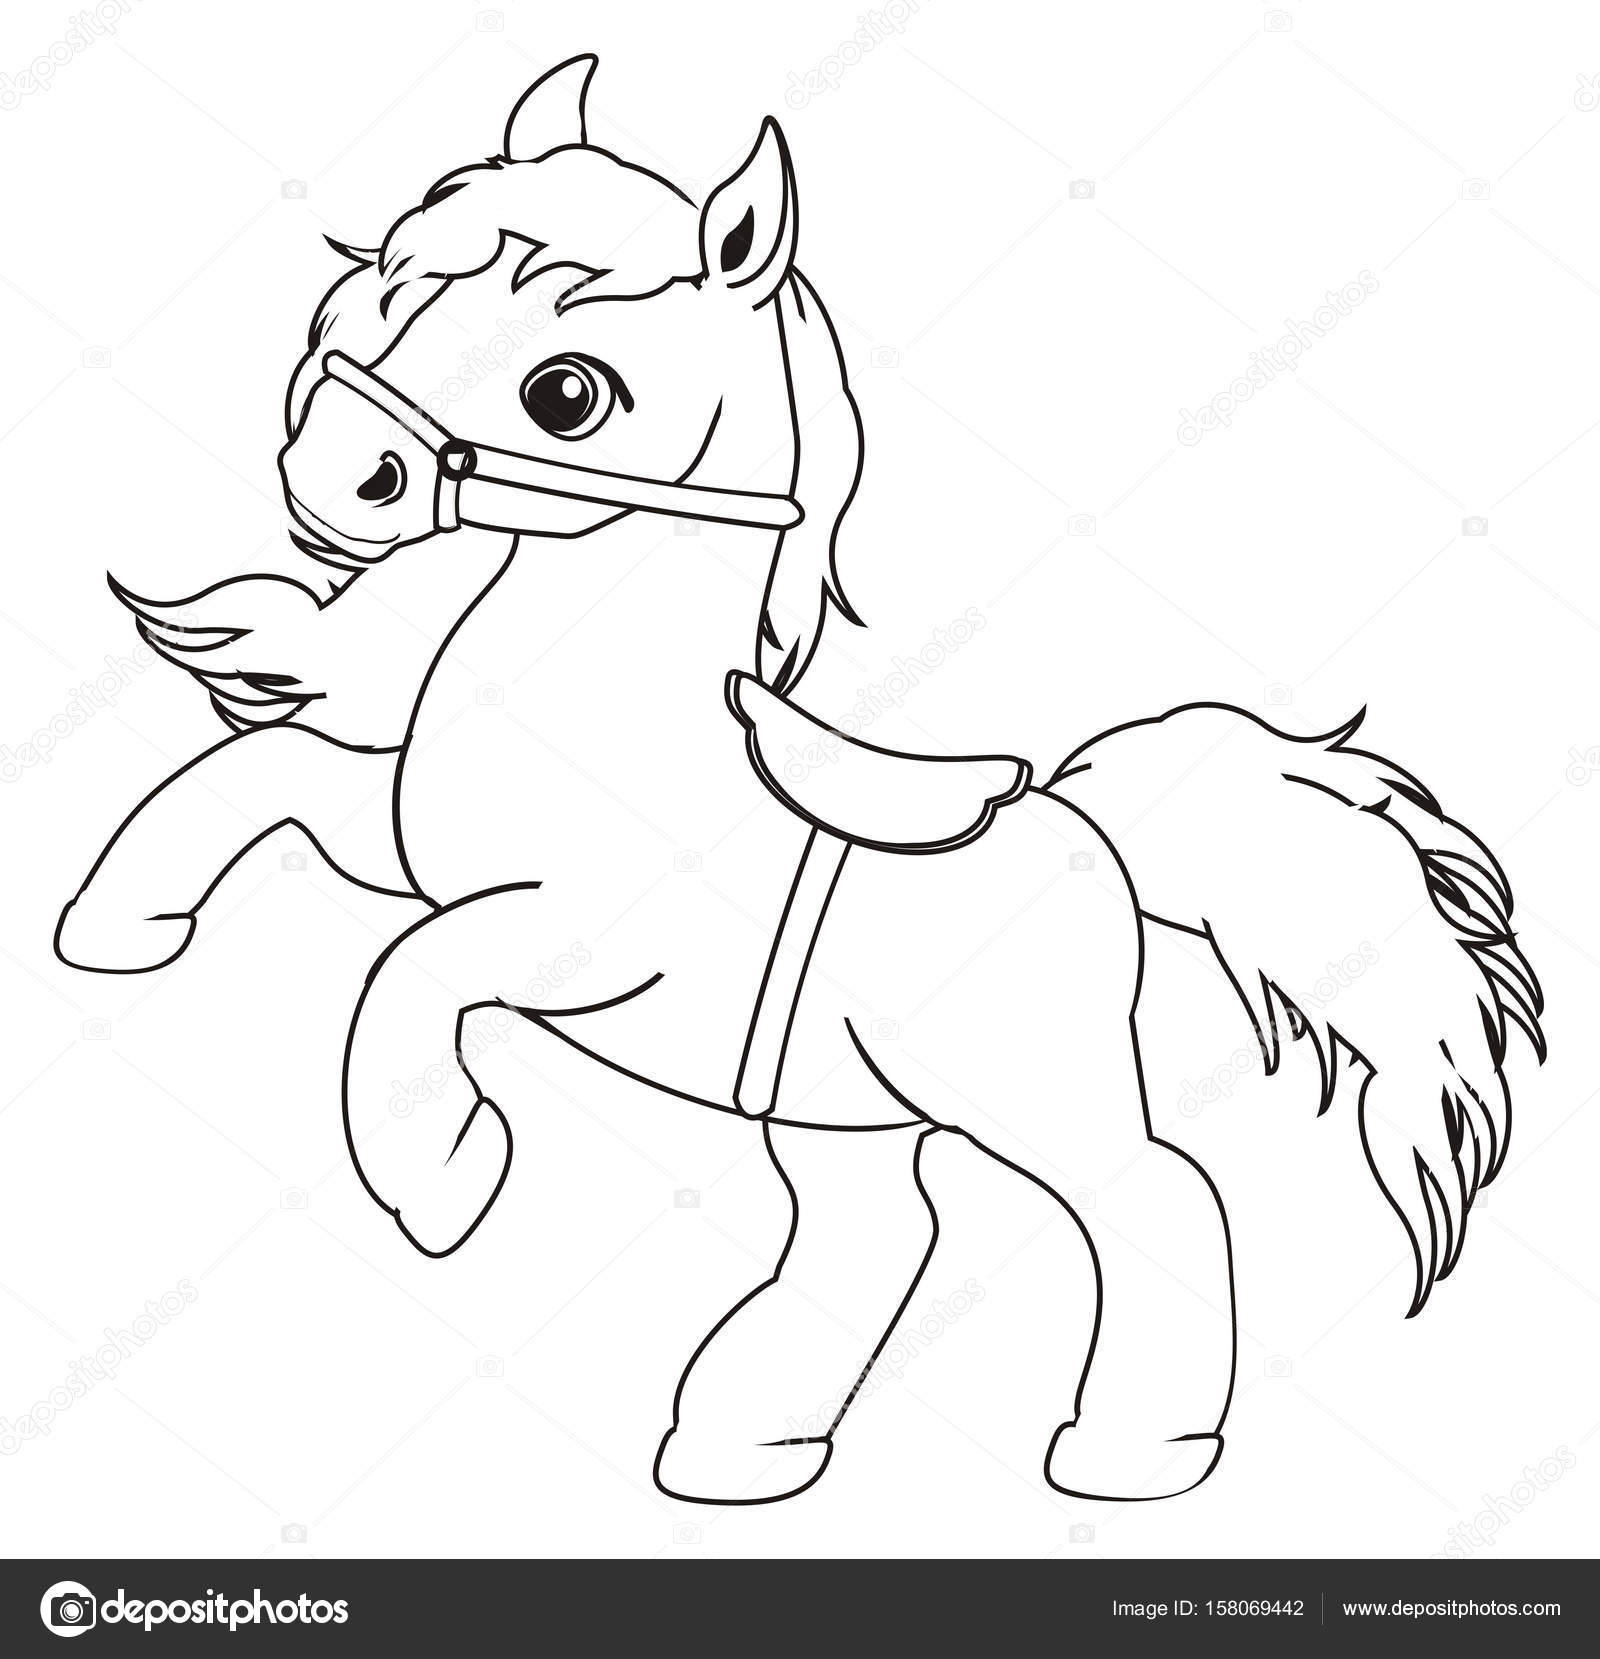 Coloriage Cheval Mignon.Coloriage Petit Cheval Mignon Photographie Tatty77tatty C 158069442